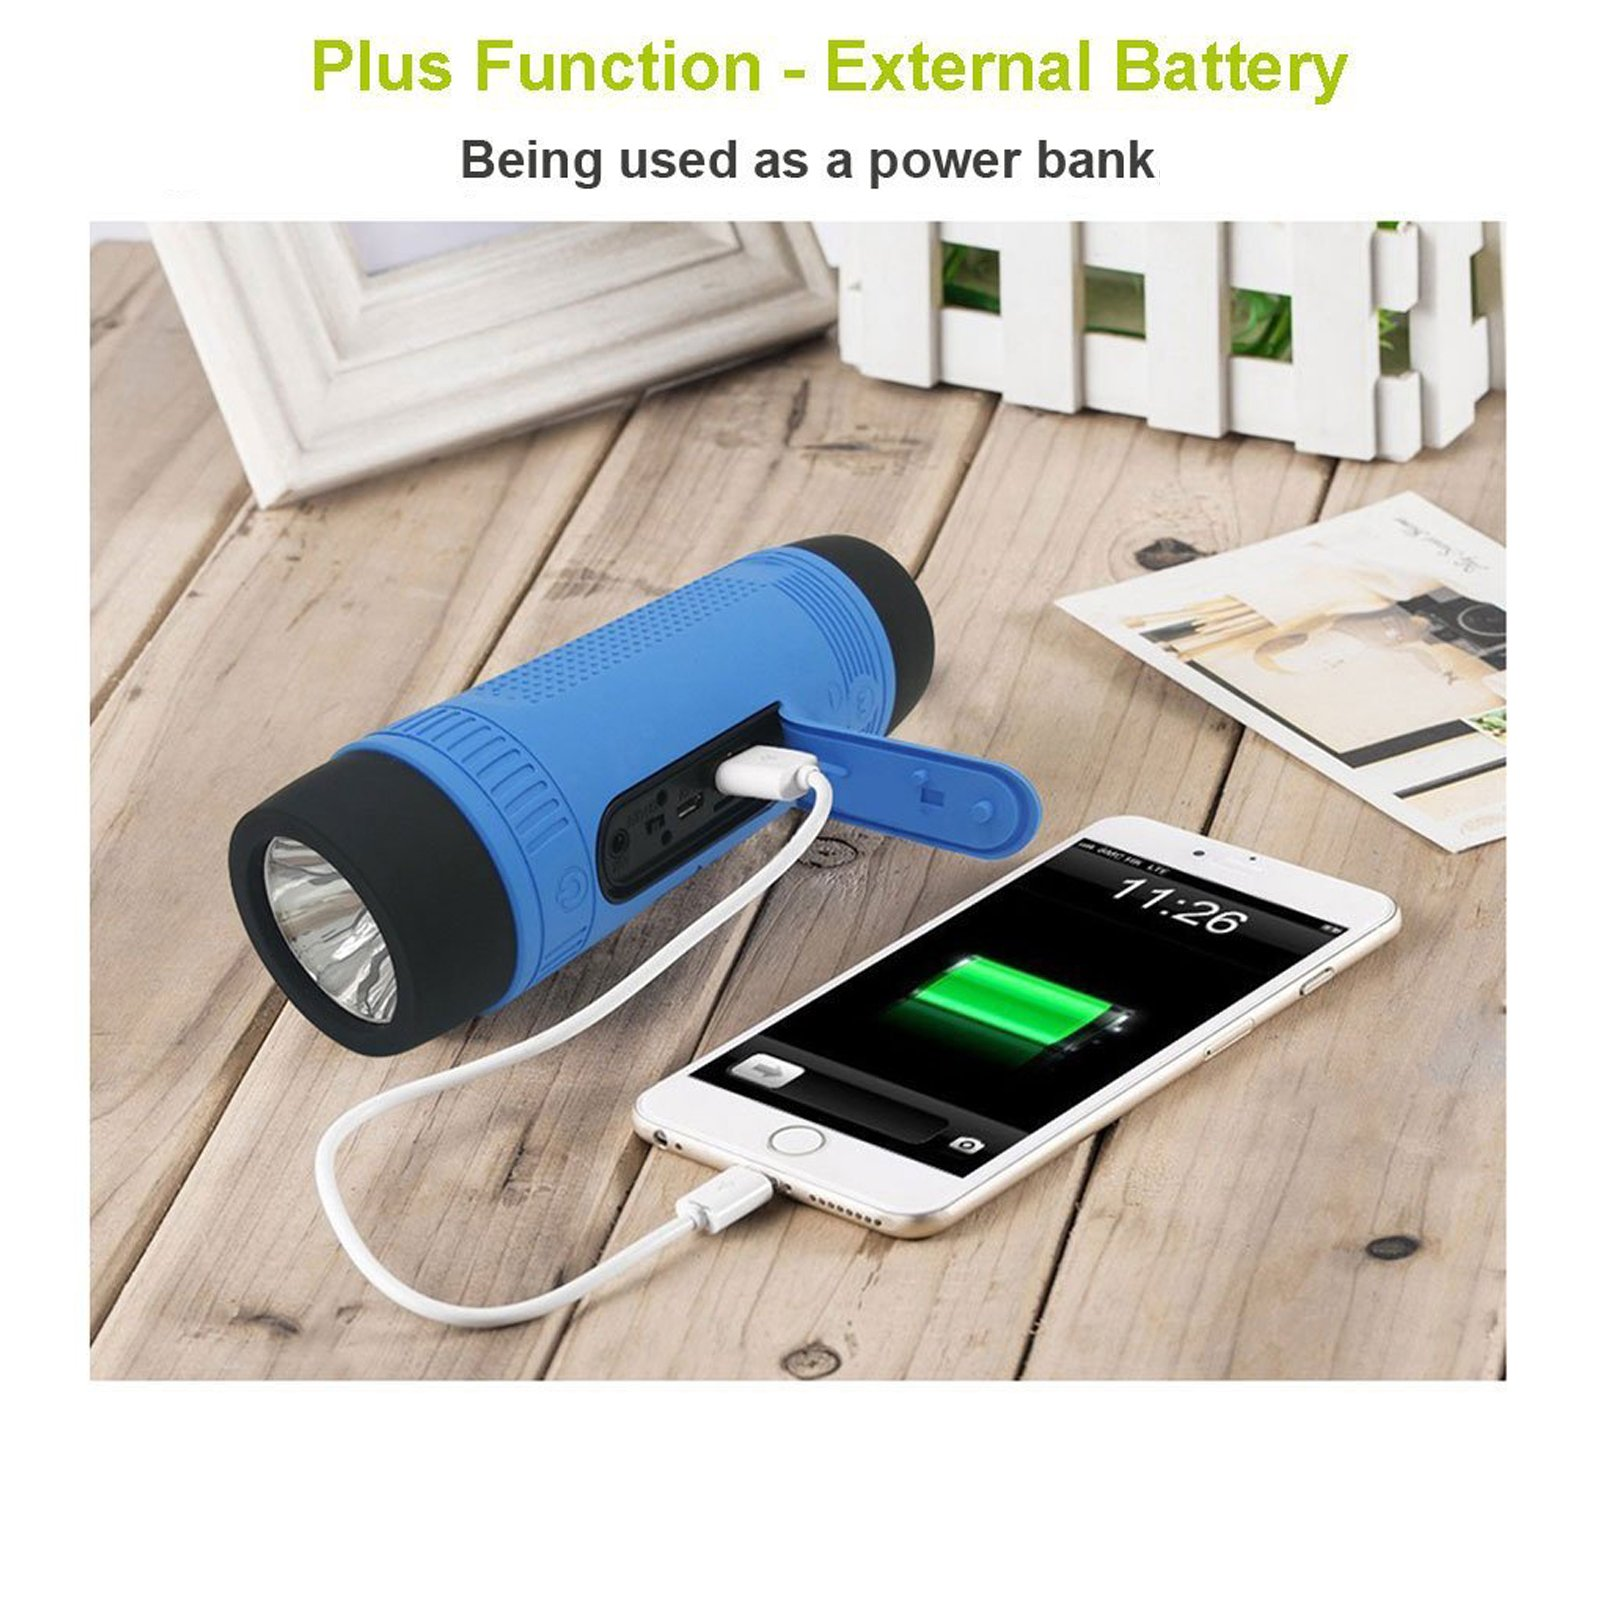 Portable Multifuctional Wireless Bluetooth Speaker 4000mAh Rechargeable Power Bank 3 Mode Emergency Flashlight Handsfree Answering Phone Call TF Card Music Player Mounting Mracket Screw Hole (Blue) by Teastar (Image #5)